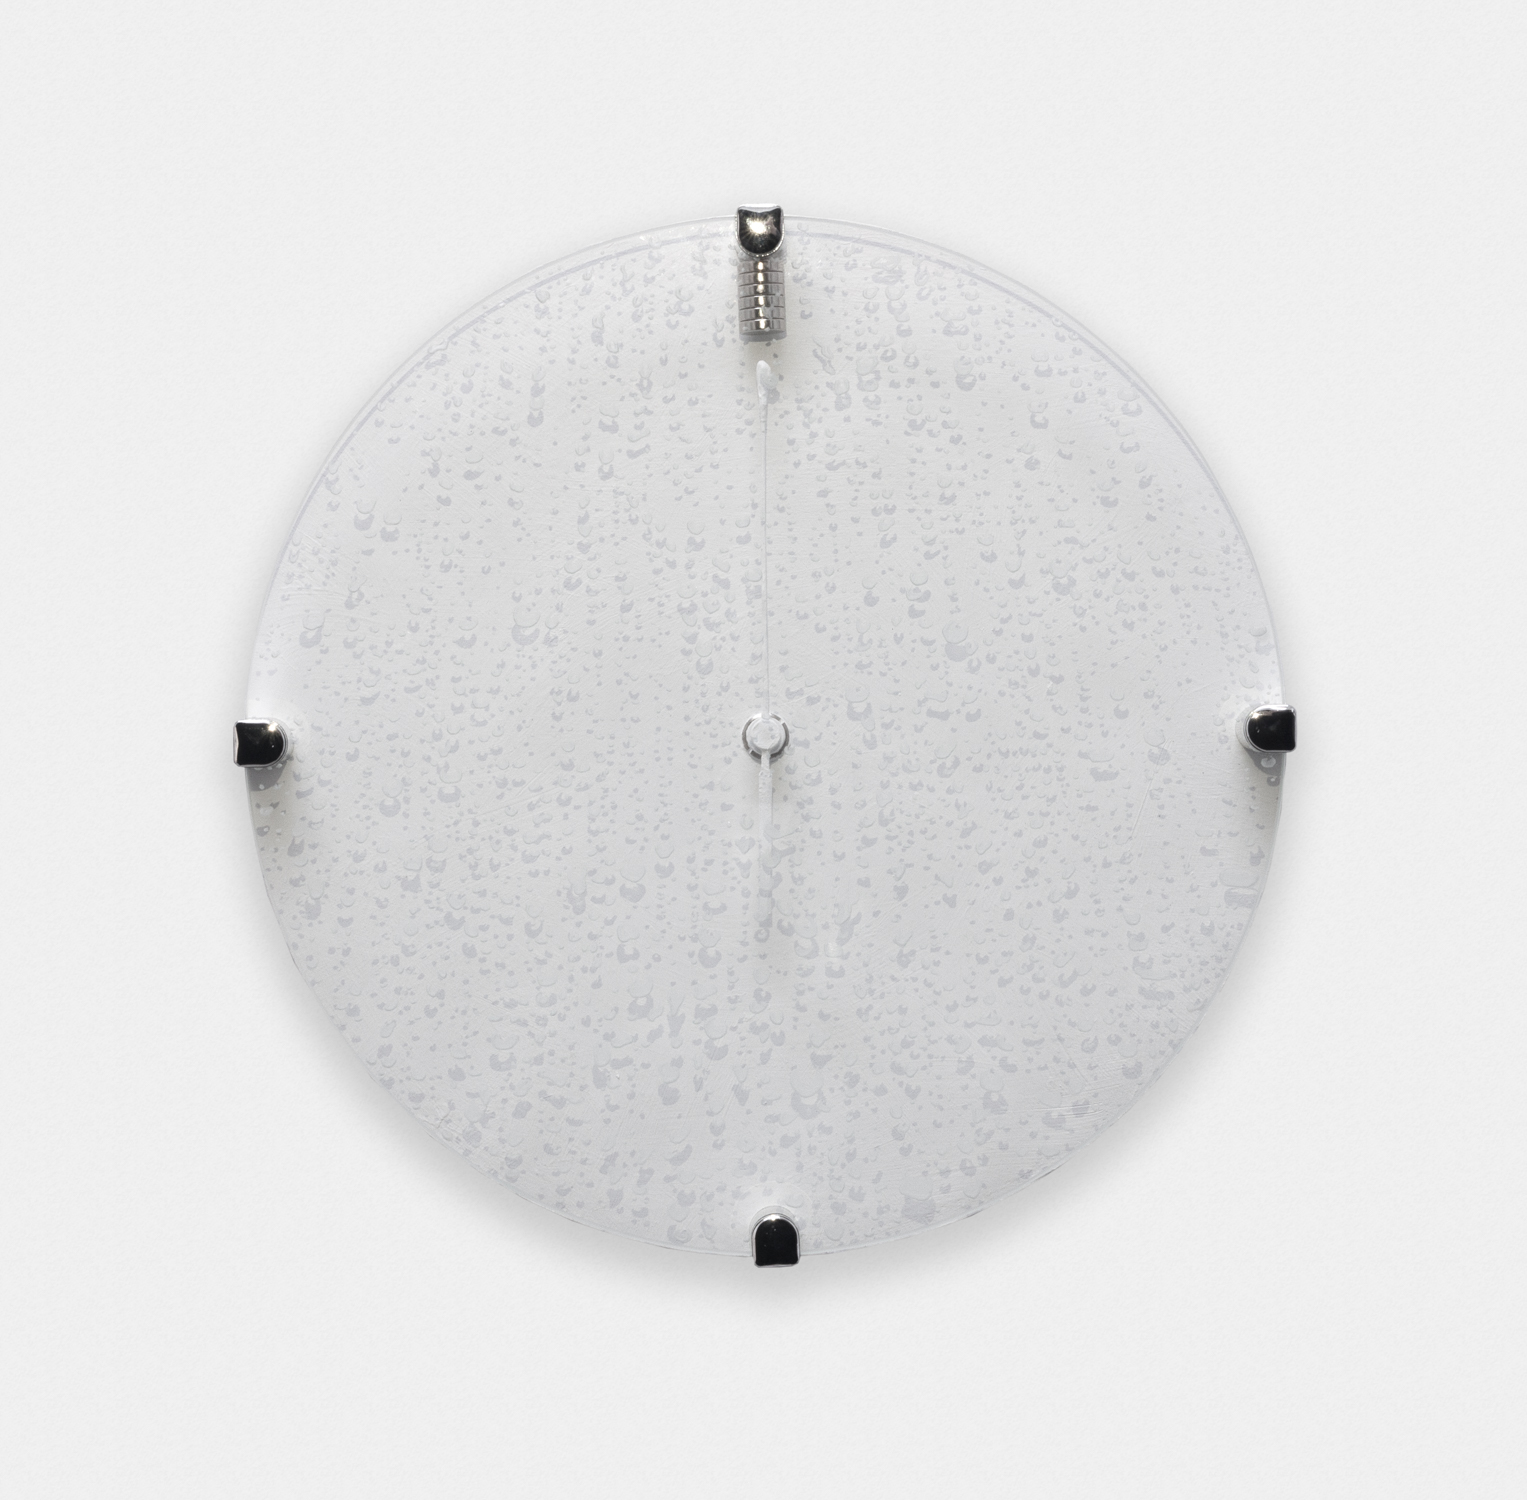 Greg Bae  It Shall All Be Mine (1)  2016 Magnetized atomic clock, magnets, acrylic and engraving on glass 10 ½in diameter GB001